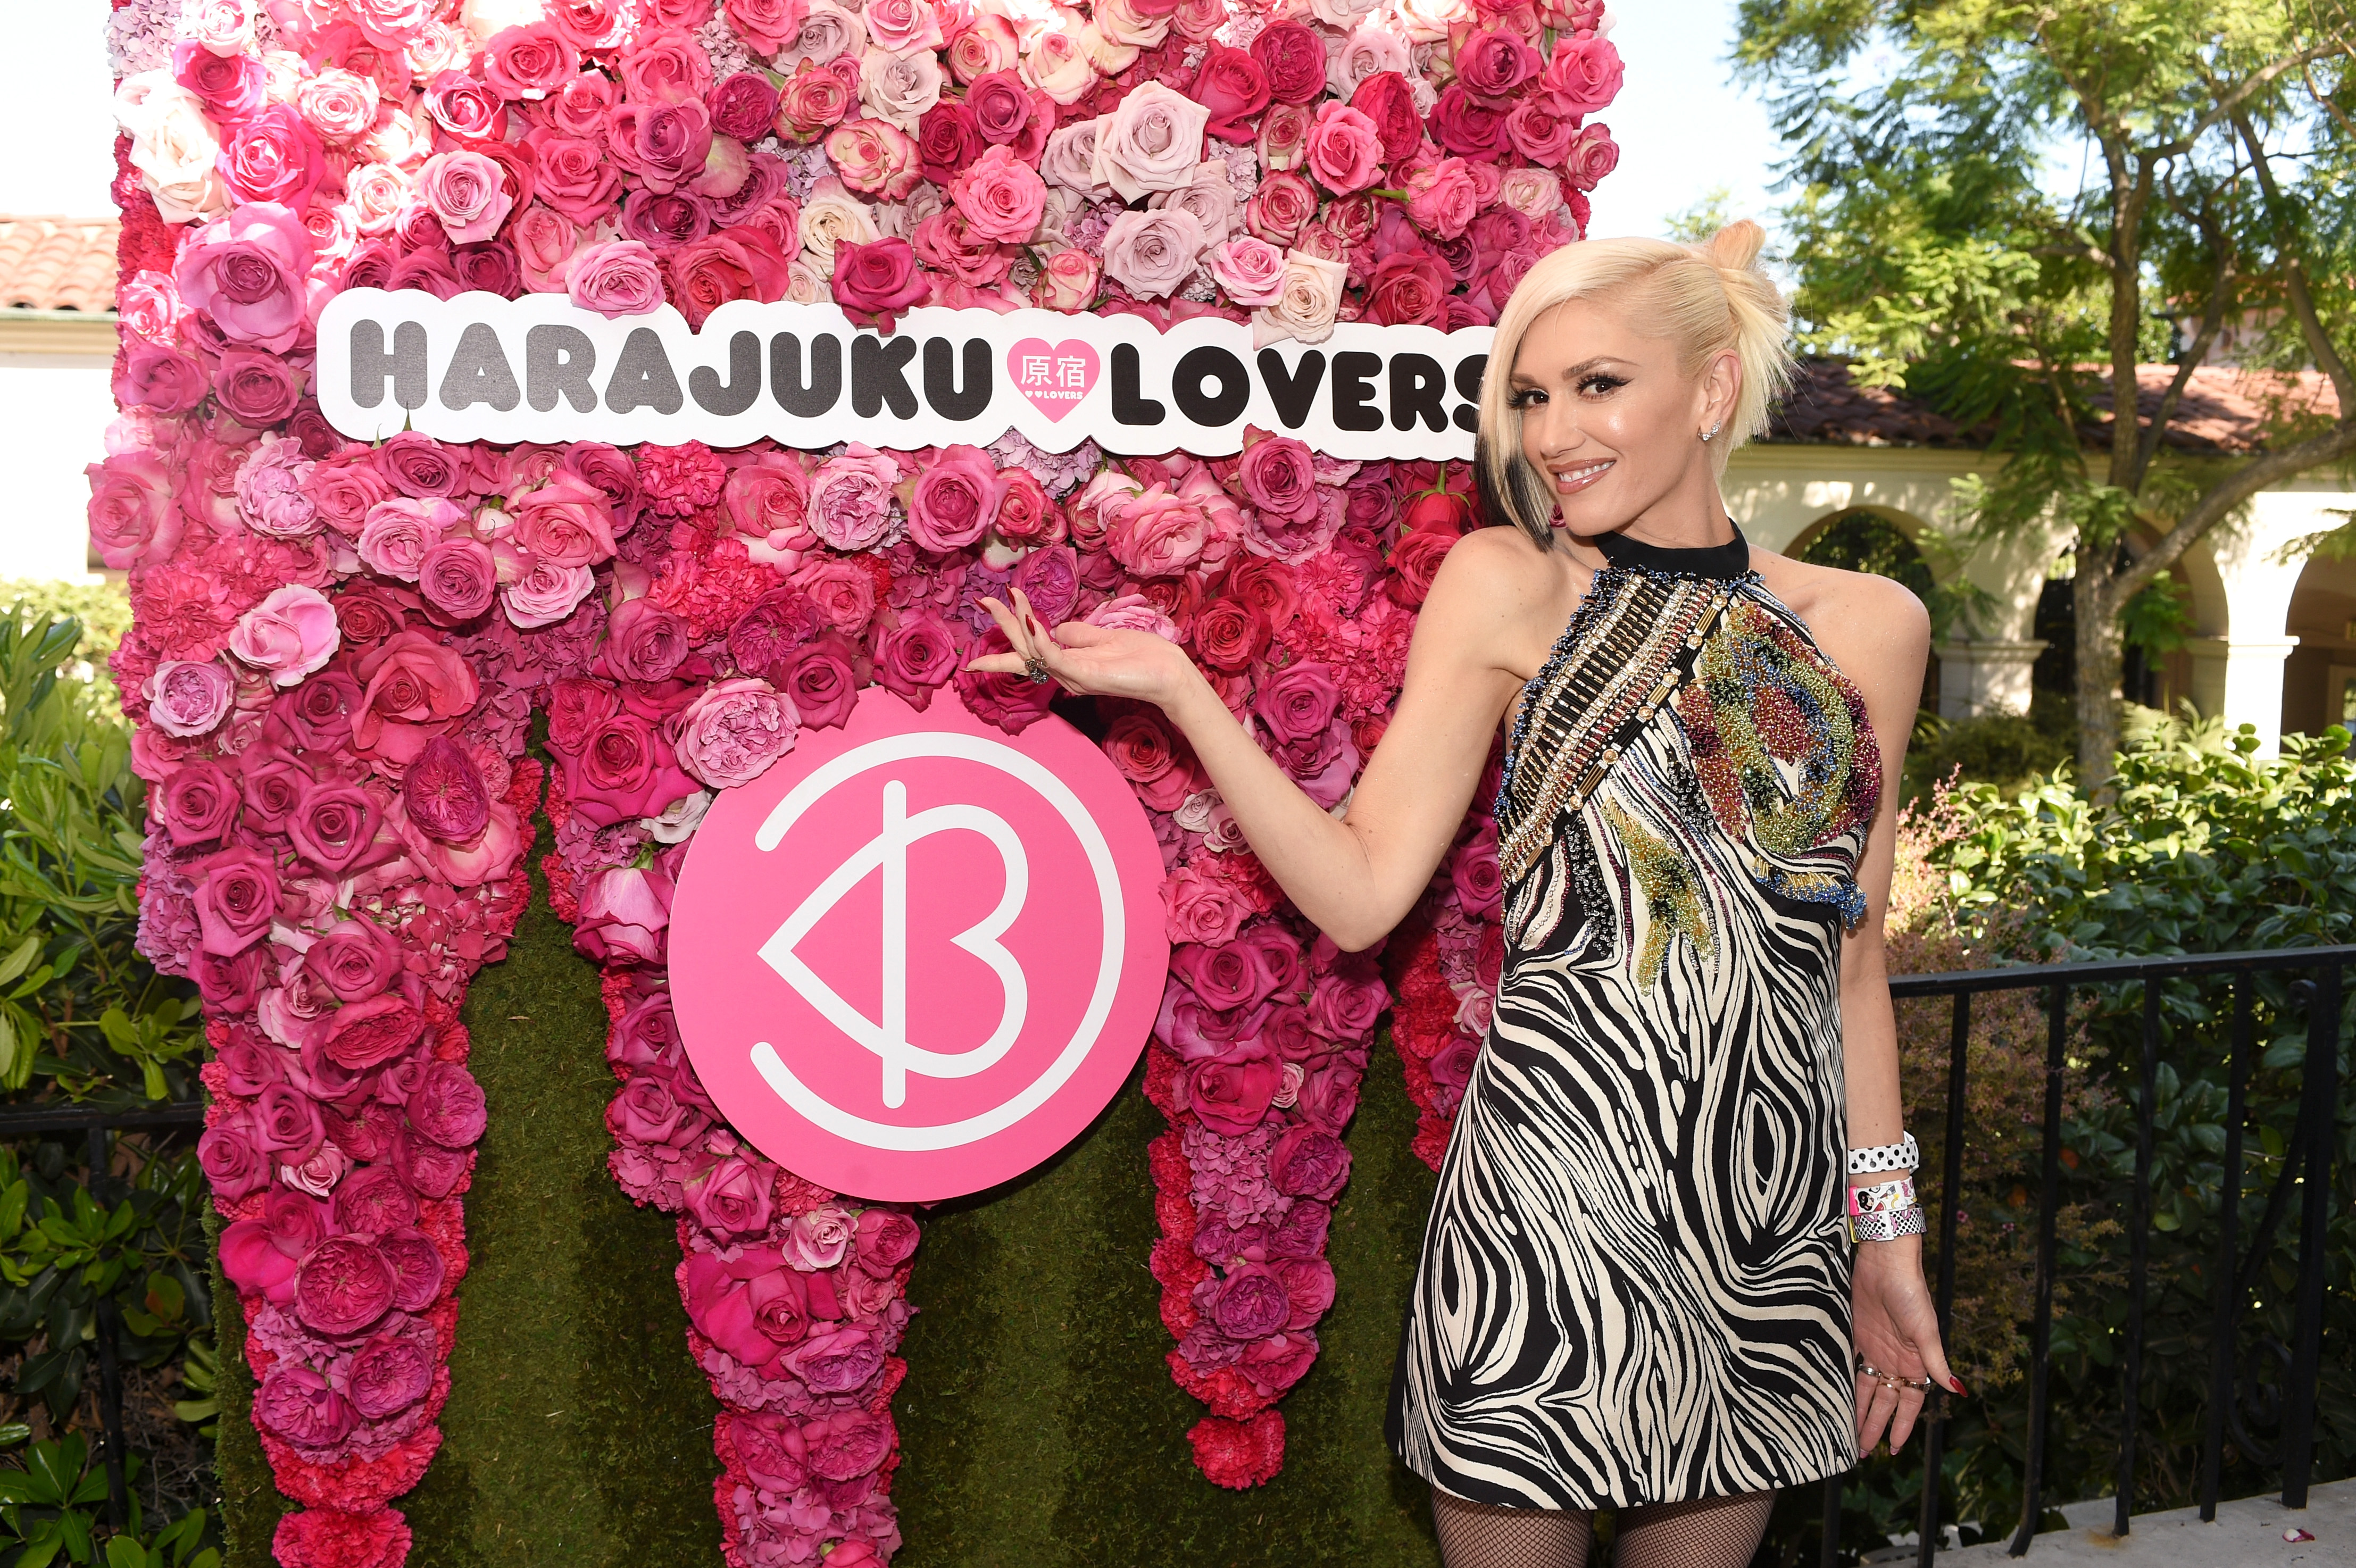 LOS ANGELES, CA - JULY 10:  Singer Gwen Stefani attends Harajuku Lovers #PopElectric High Tea at The Ebell Club of Los Angeles on July 10, 2015 in Los Angeles, California.  (Photo by Stefanie Keenan/Getty Images for BeautyCon)